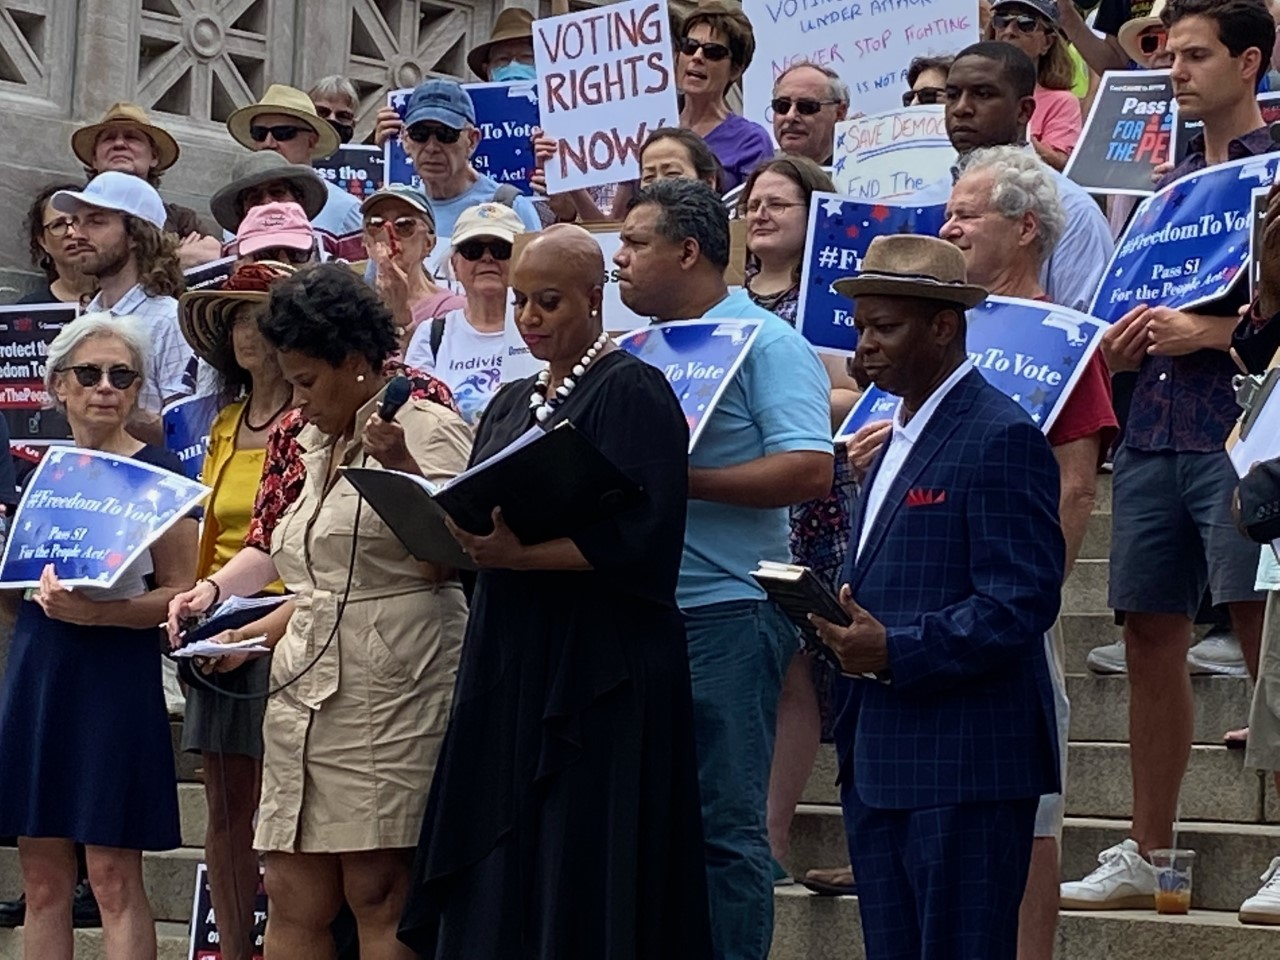 Pressley speaks at Freedom to Vote Rally